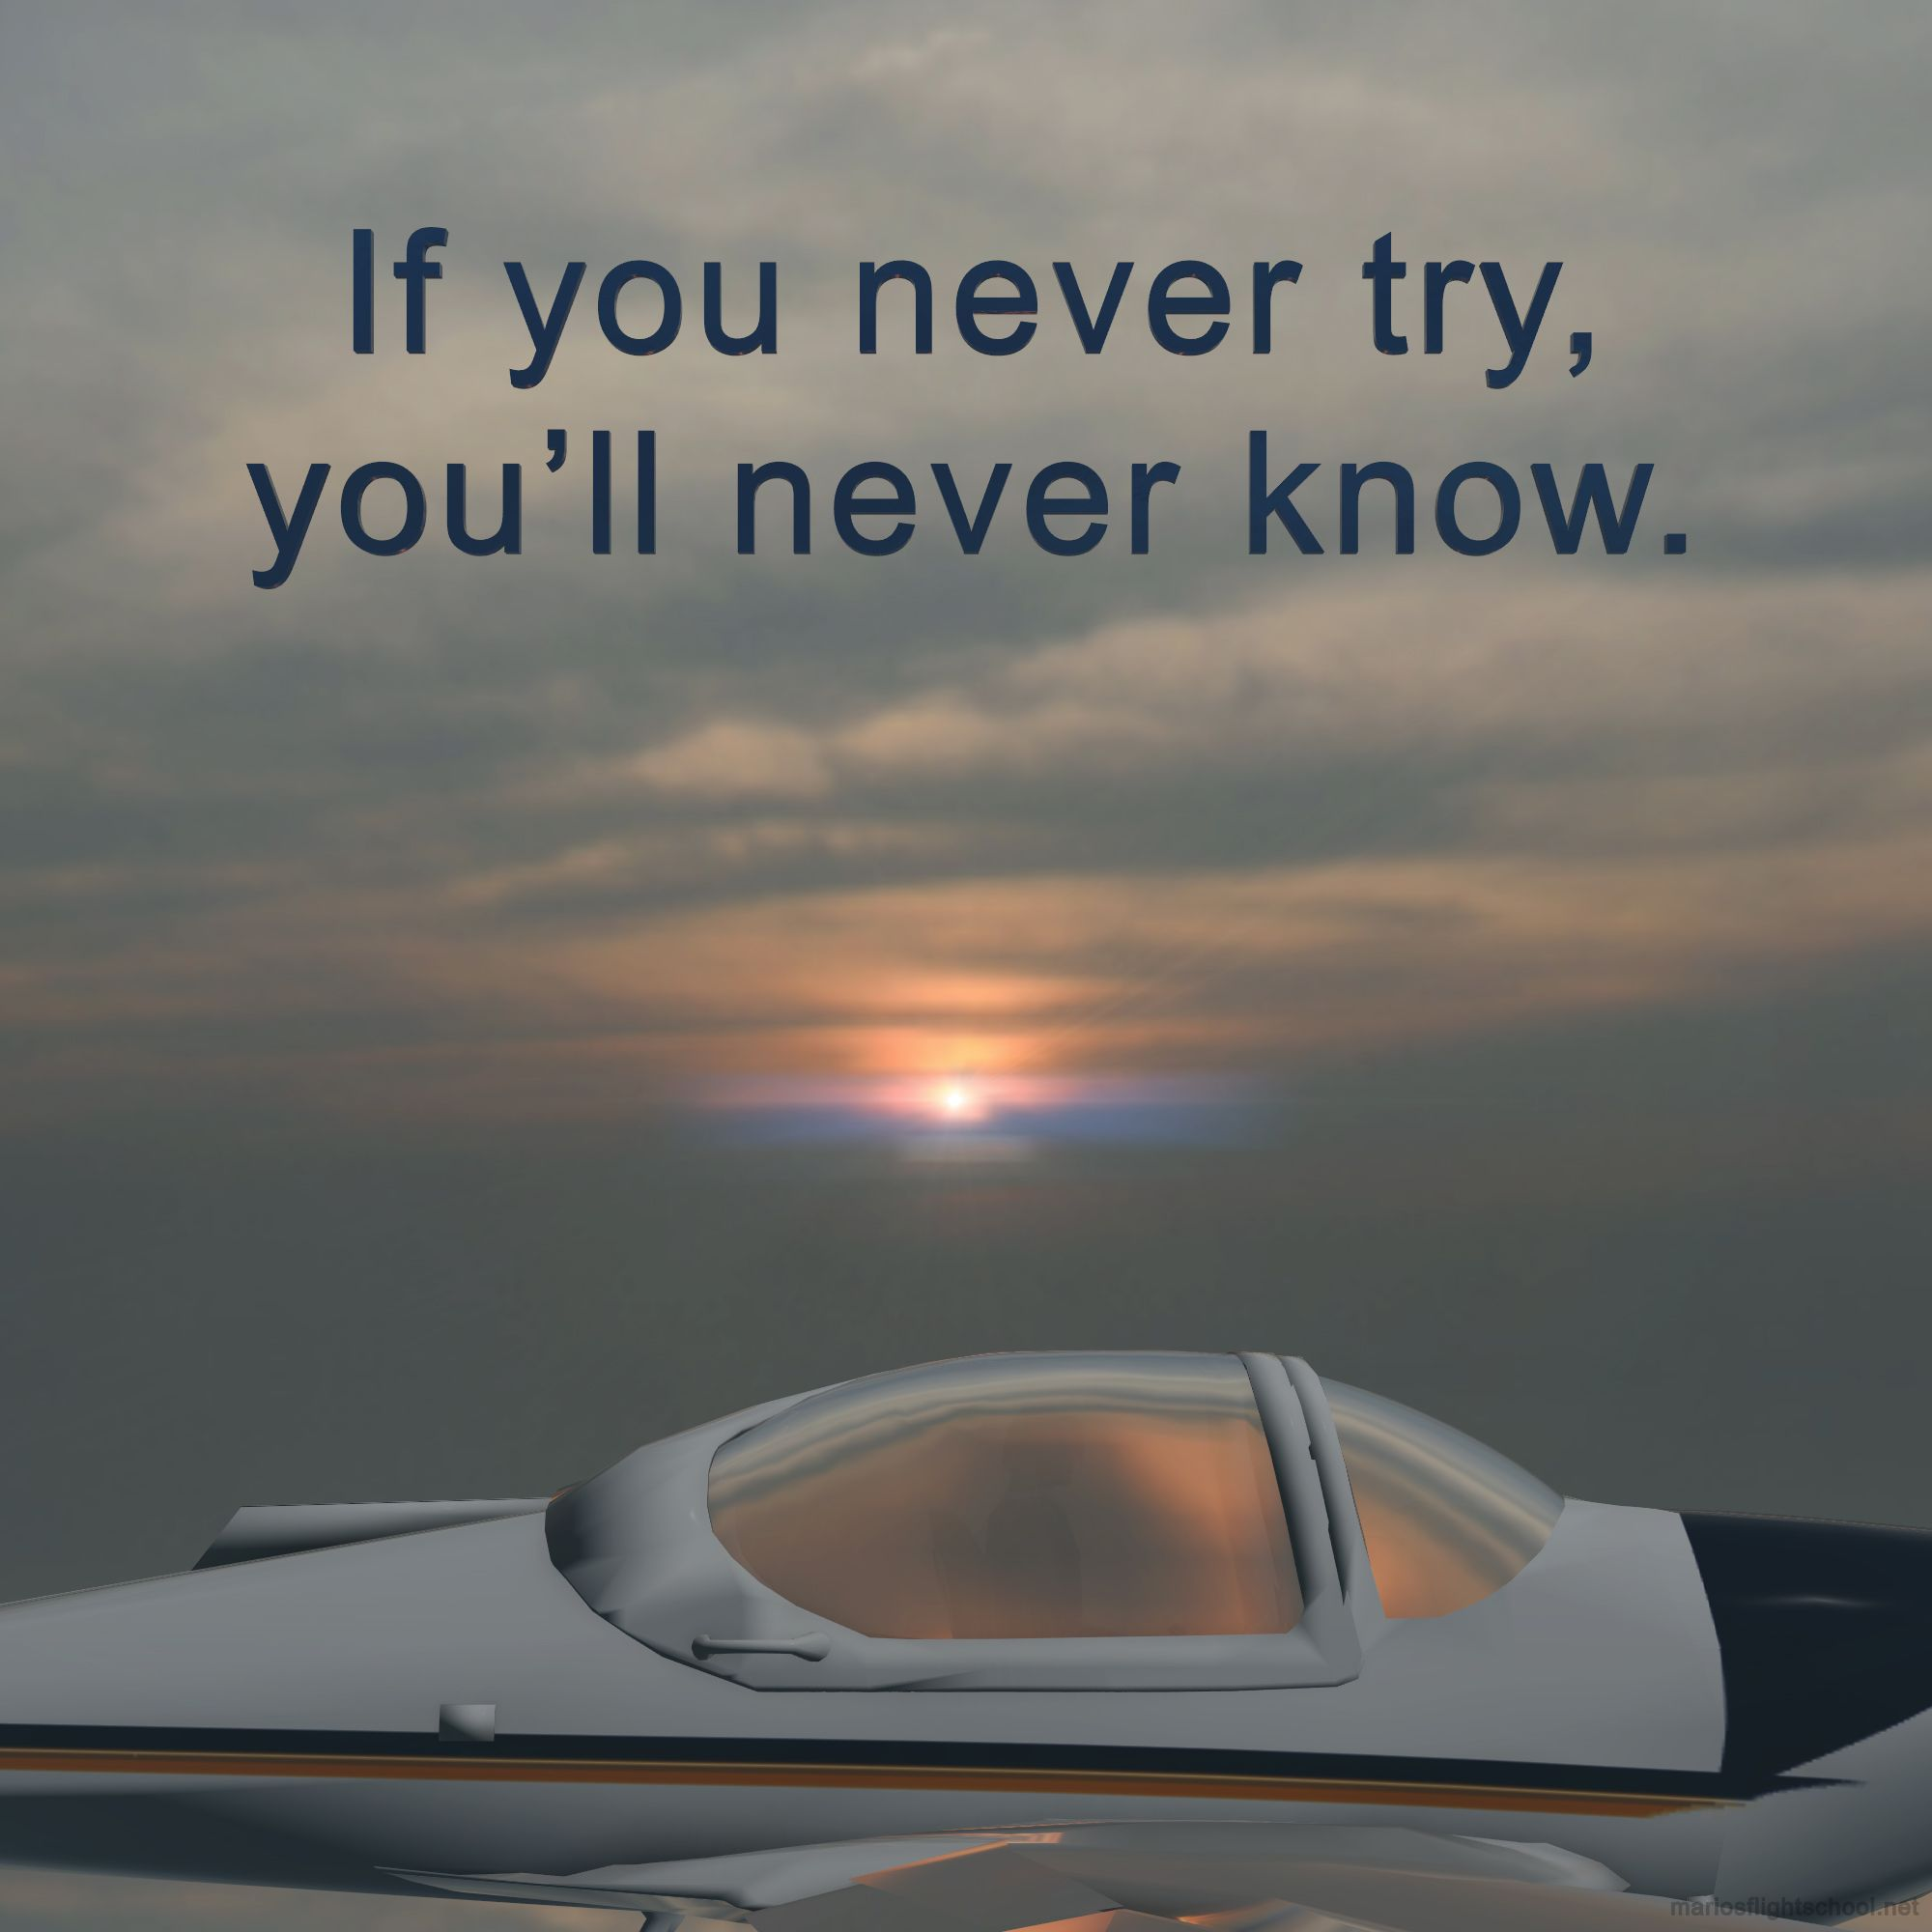 aviation, aviation quotes, Pilots quotes aviation